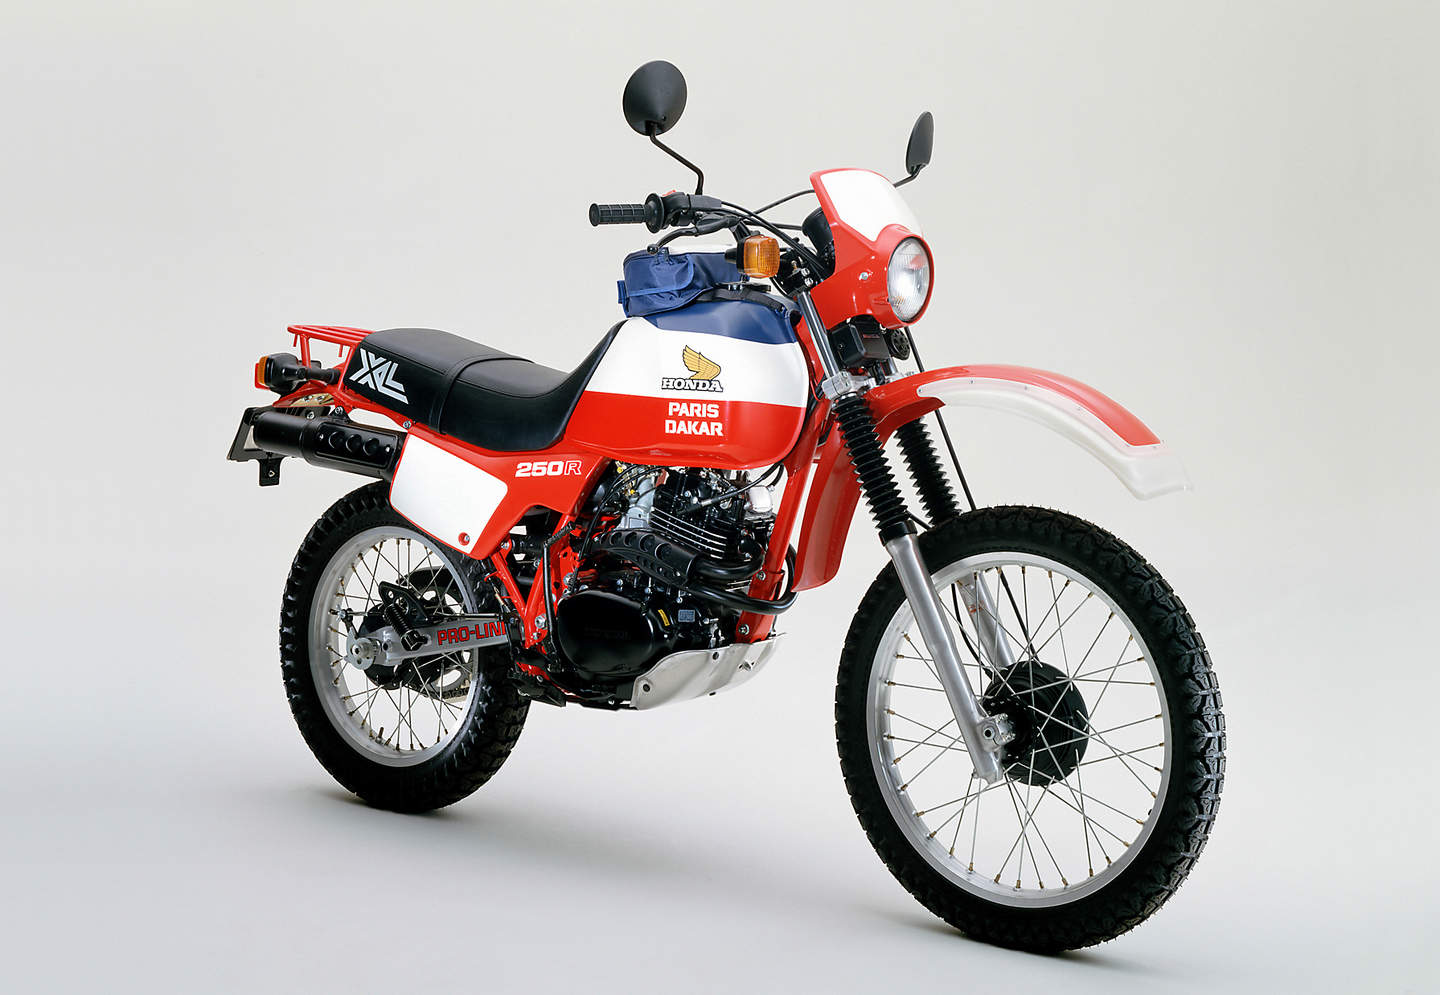 Honda 250xl on